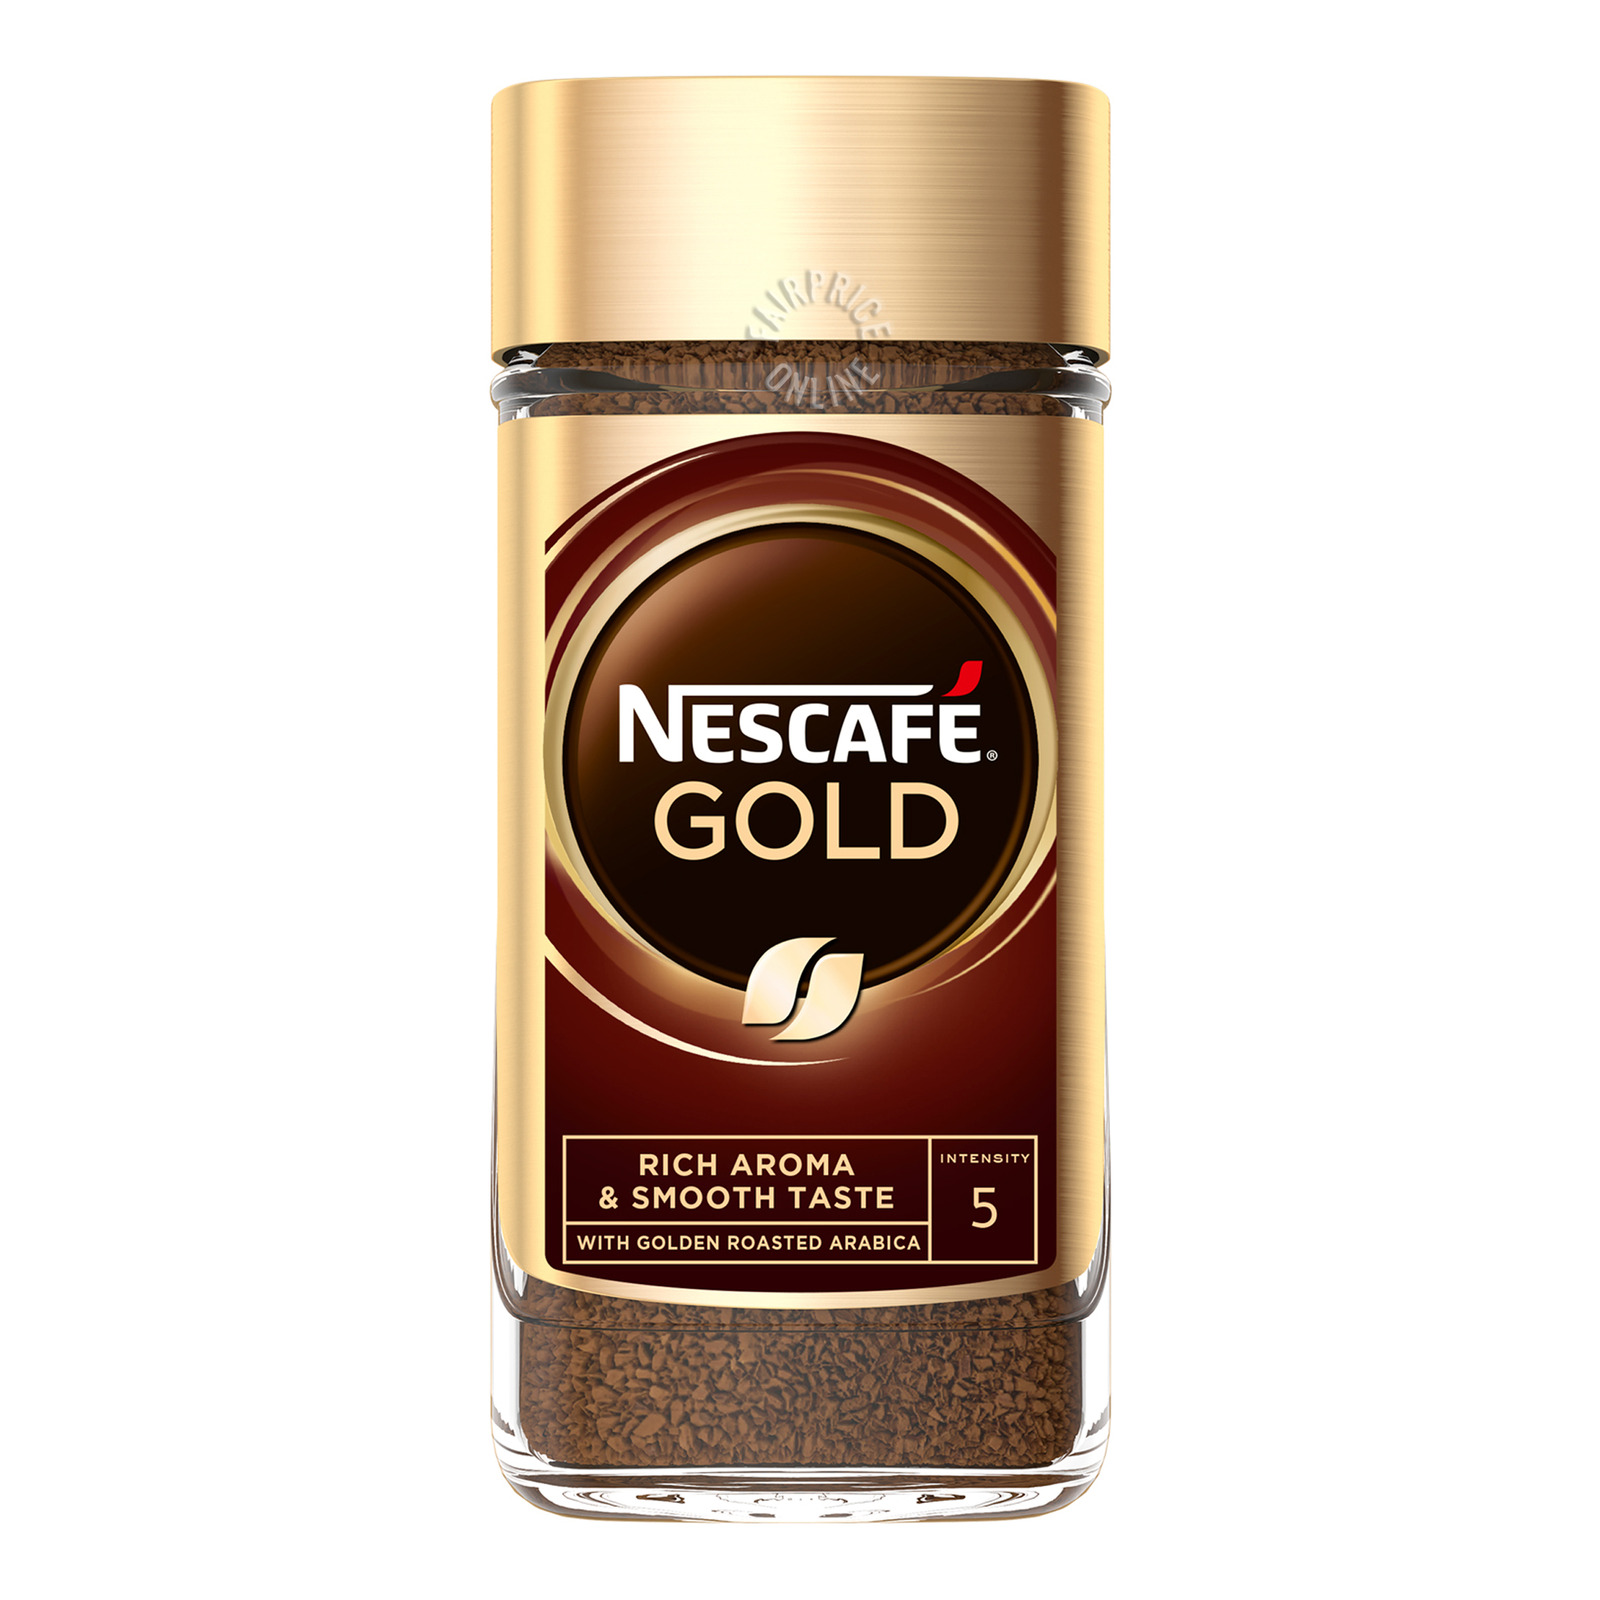 Nescafe Gold Instant Arabica Ground Coffee - Rich & Smooth